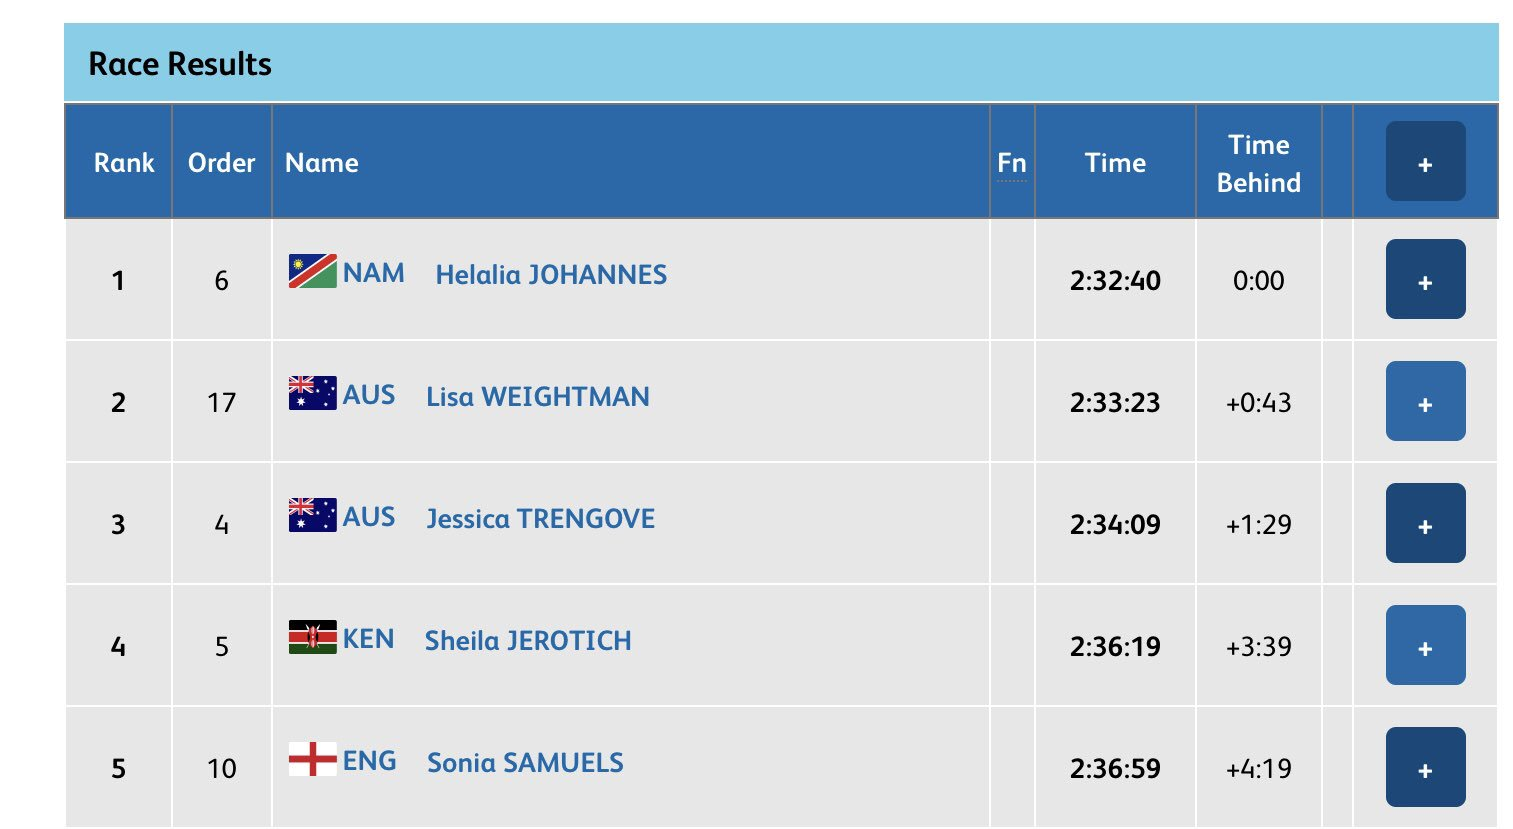 MARATHON WOMEN GOLD for NAMIBIA 🇳🇦   Helalia Johannes wins the @GC2018 Commonwealth Games women's Marathon title in 2:32:40.  Australians Lisa Weightman takes silver in 2:33:23 and Jessica Trengove finished third in 2:34:09.   #GC2018Athletics #GC2018 #GC2018MARATHON https://t.co/W4C5Oui6mM